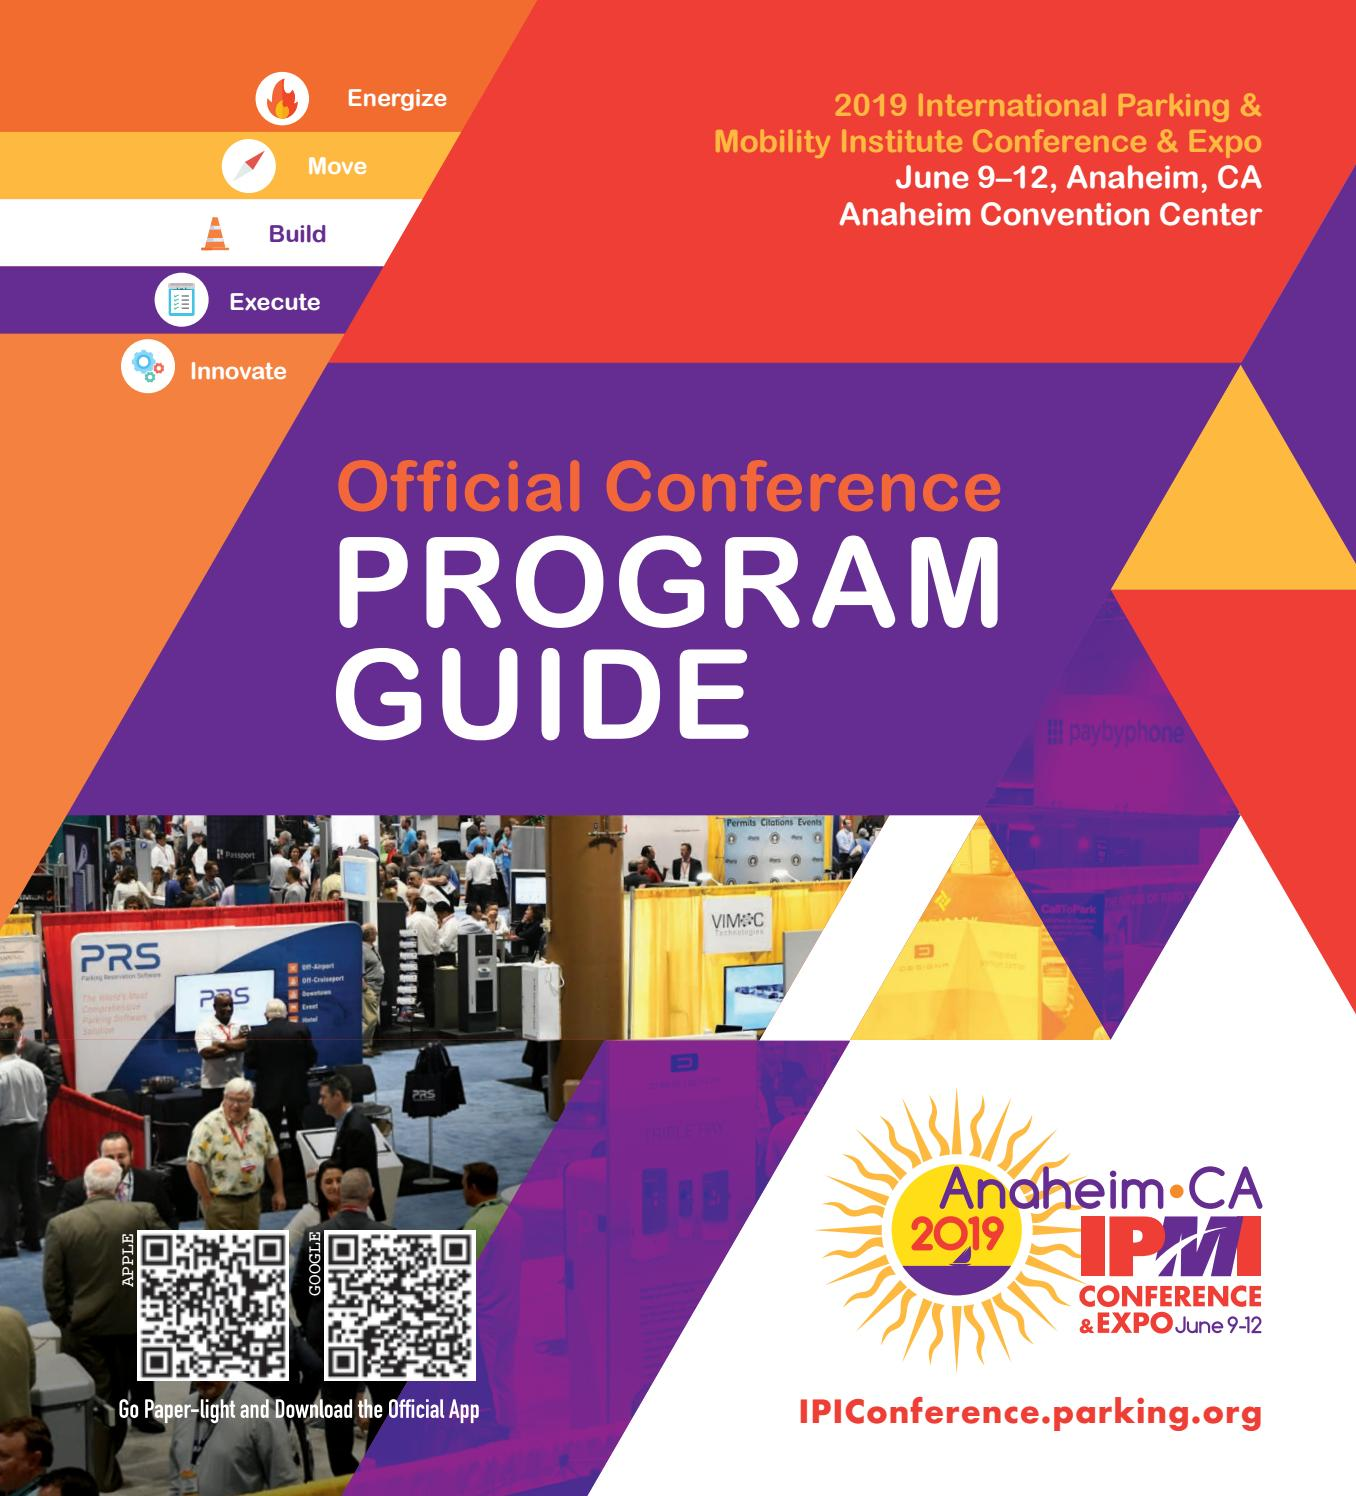 2019 IPMI Conference & Expo Program Guide by International Parking